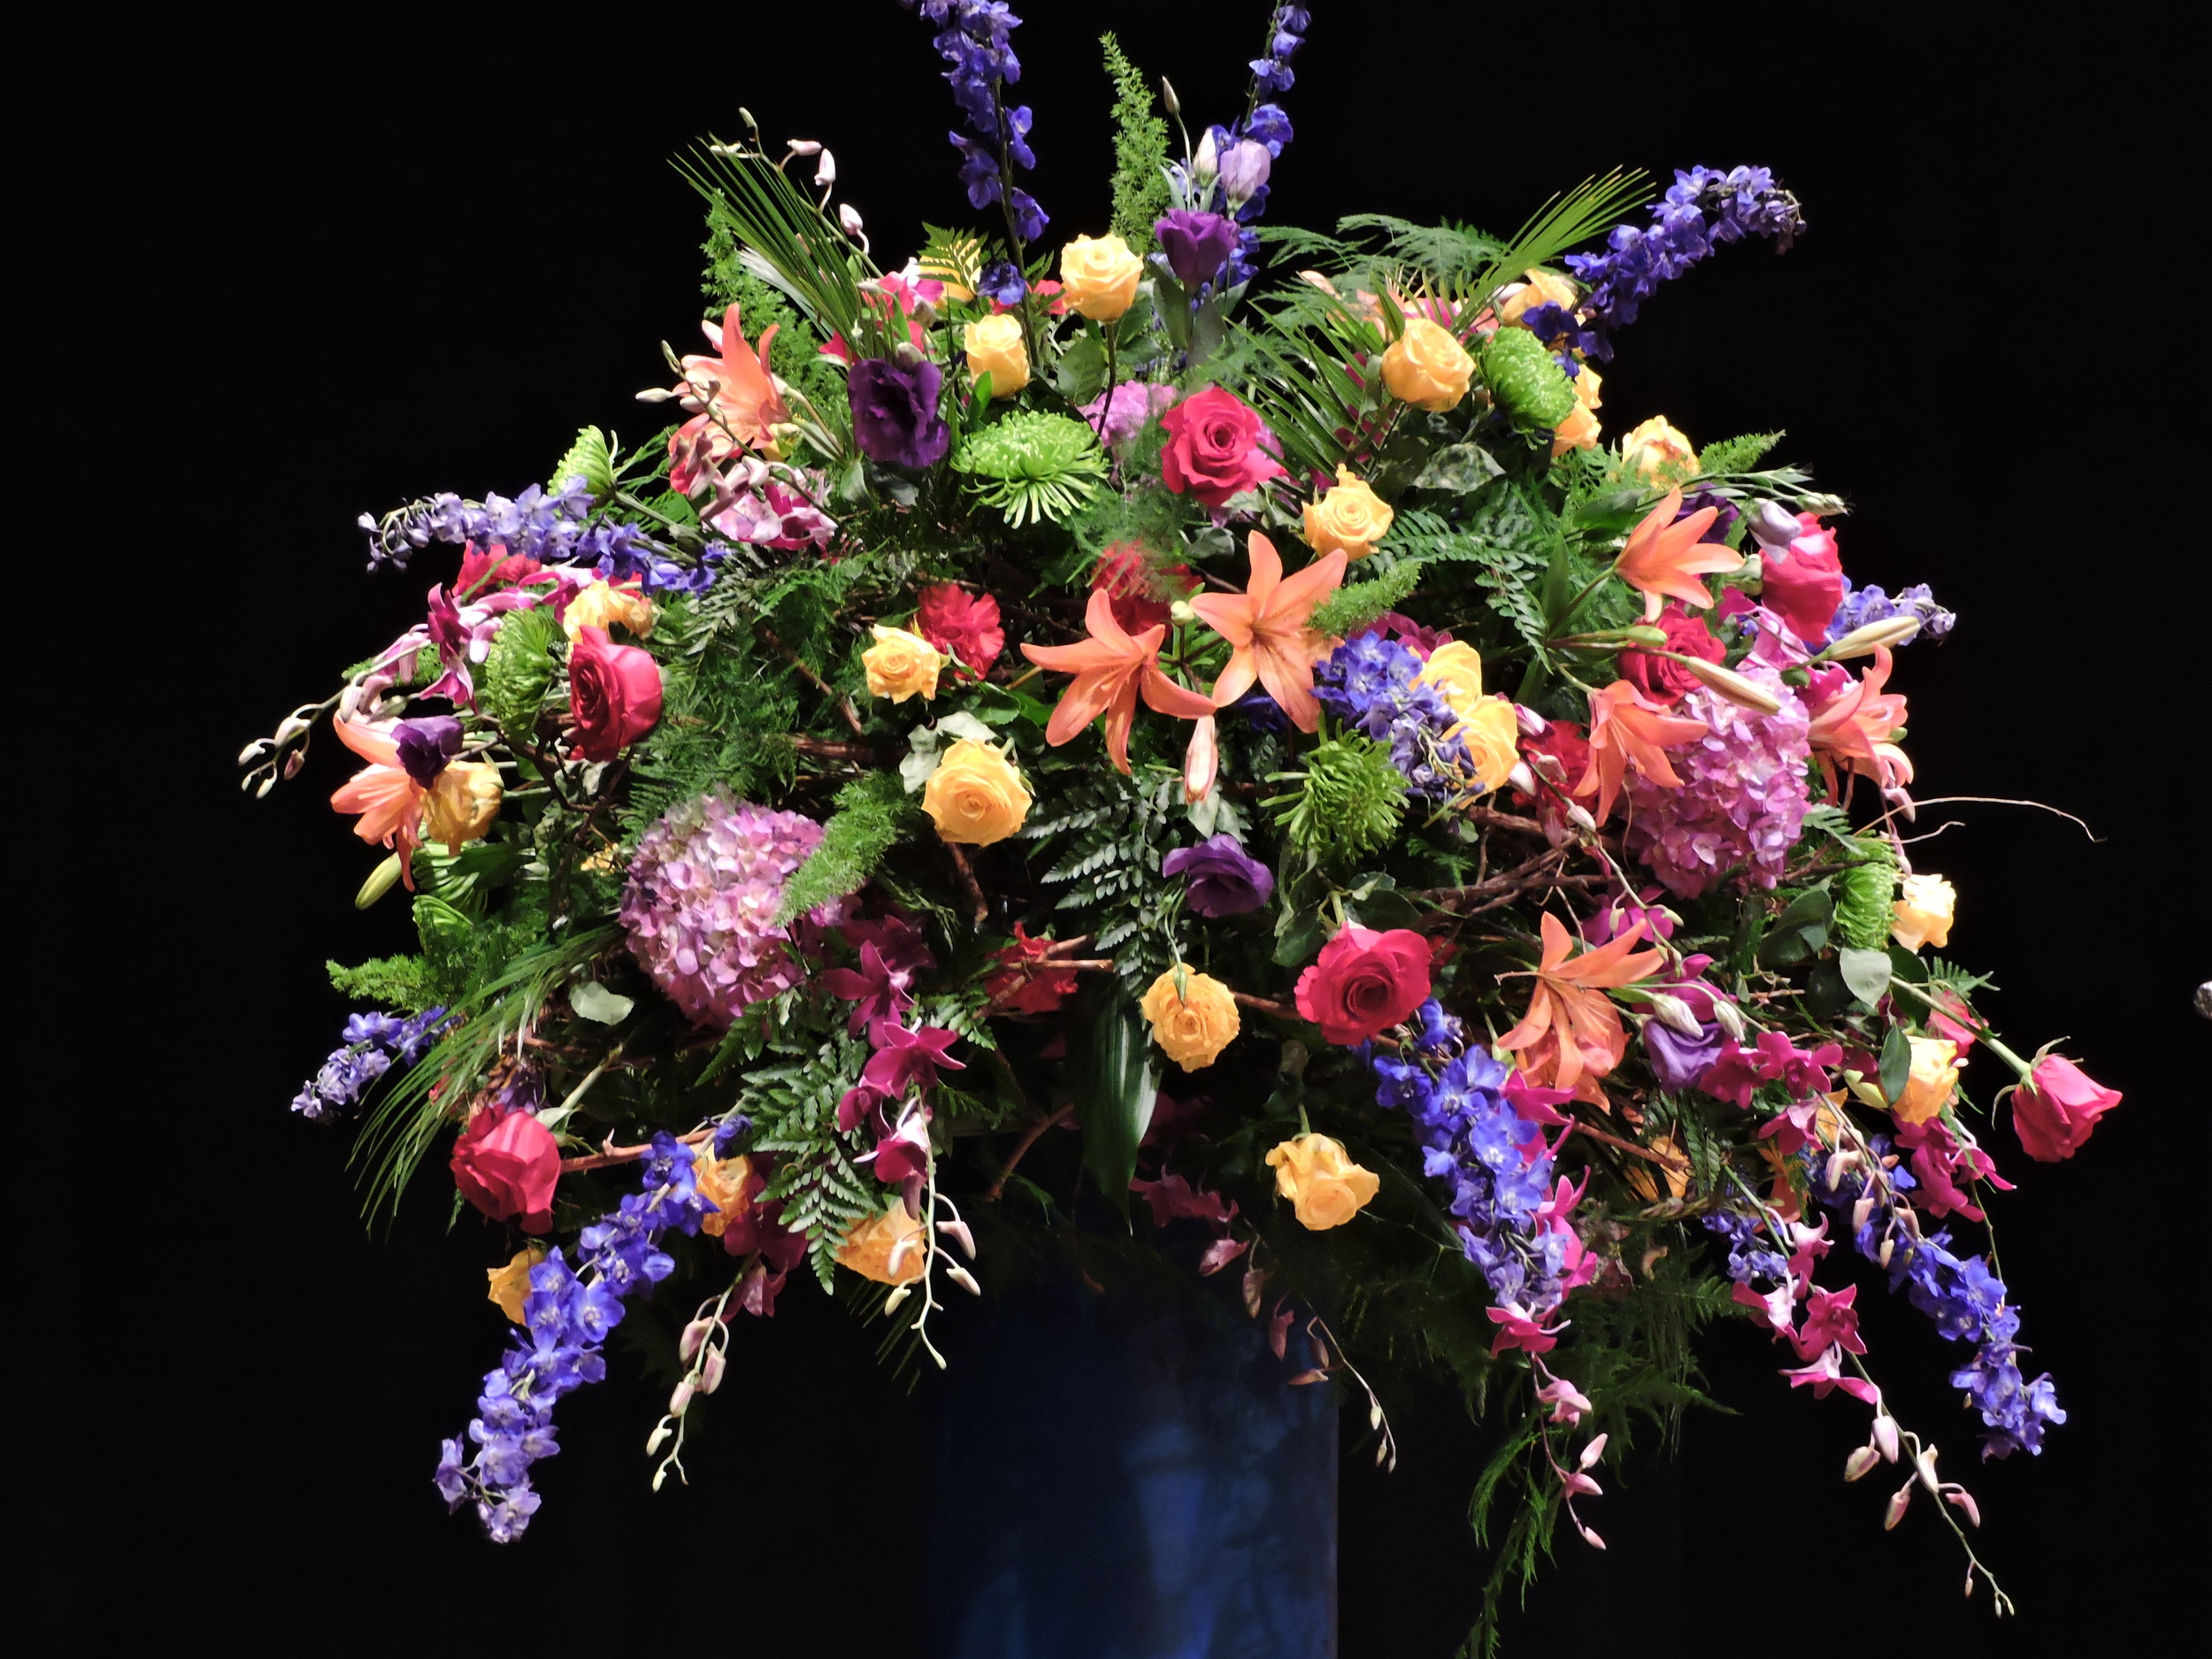 Luscious blooms in brilliant colors graced the stage at the Wang Center for His Holiness the Dali Lama